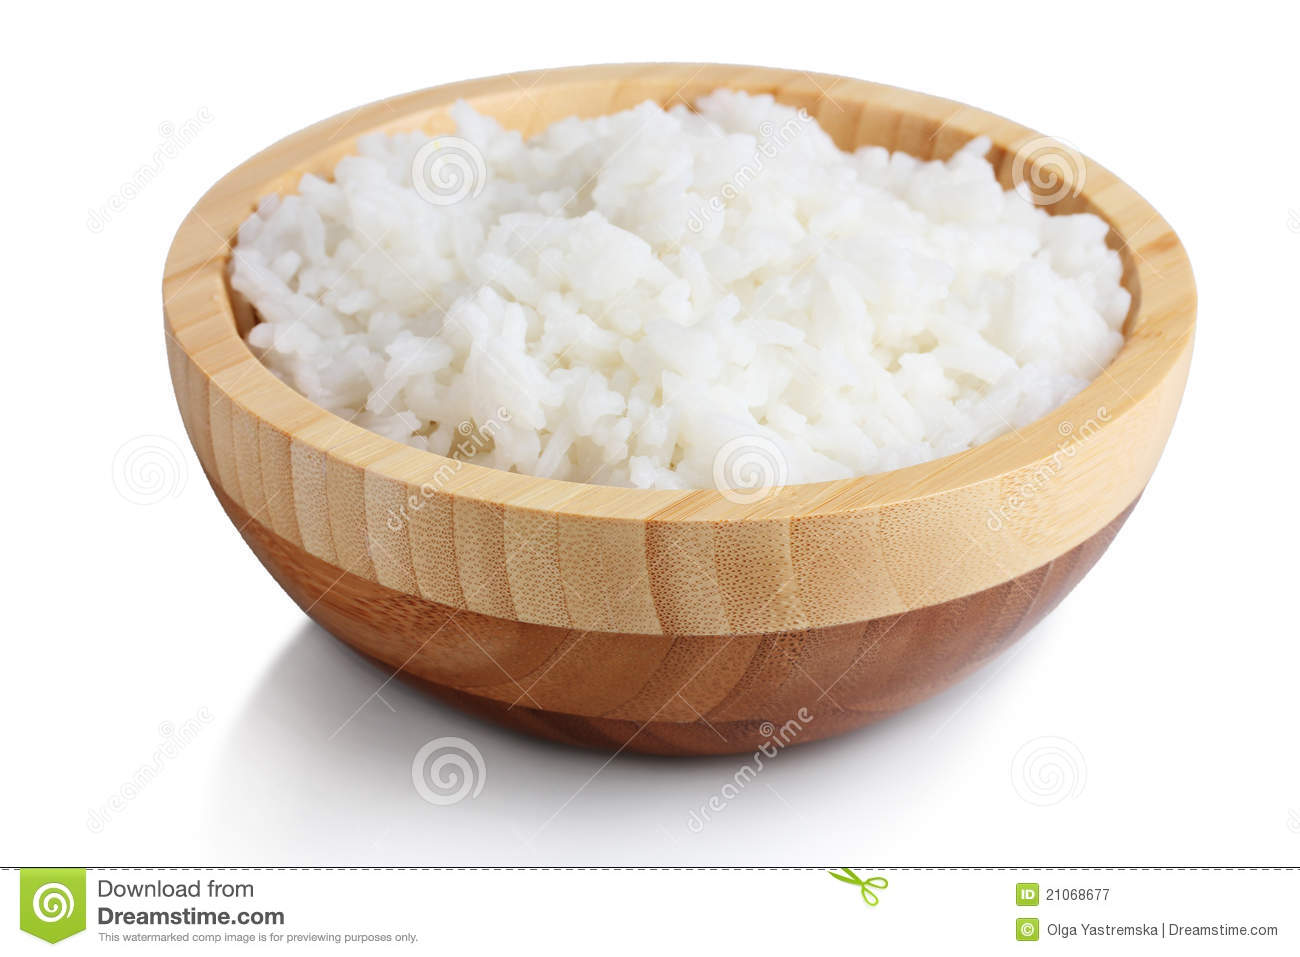 2020 Other | Images: Bowl Of Rice Clipart